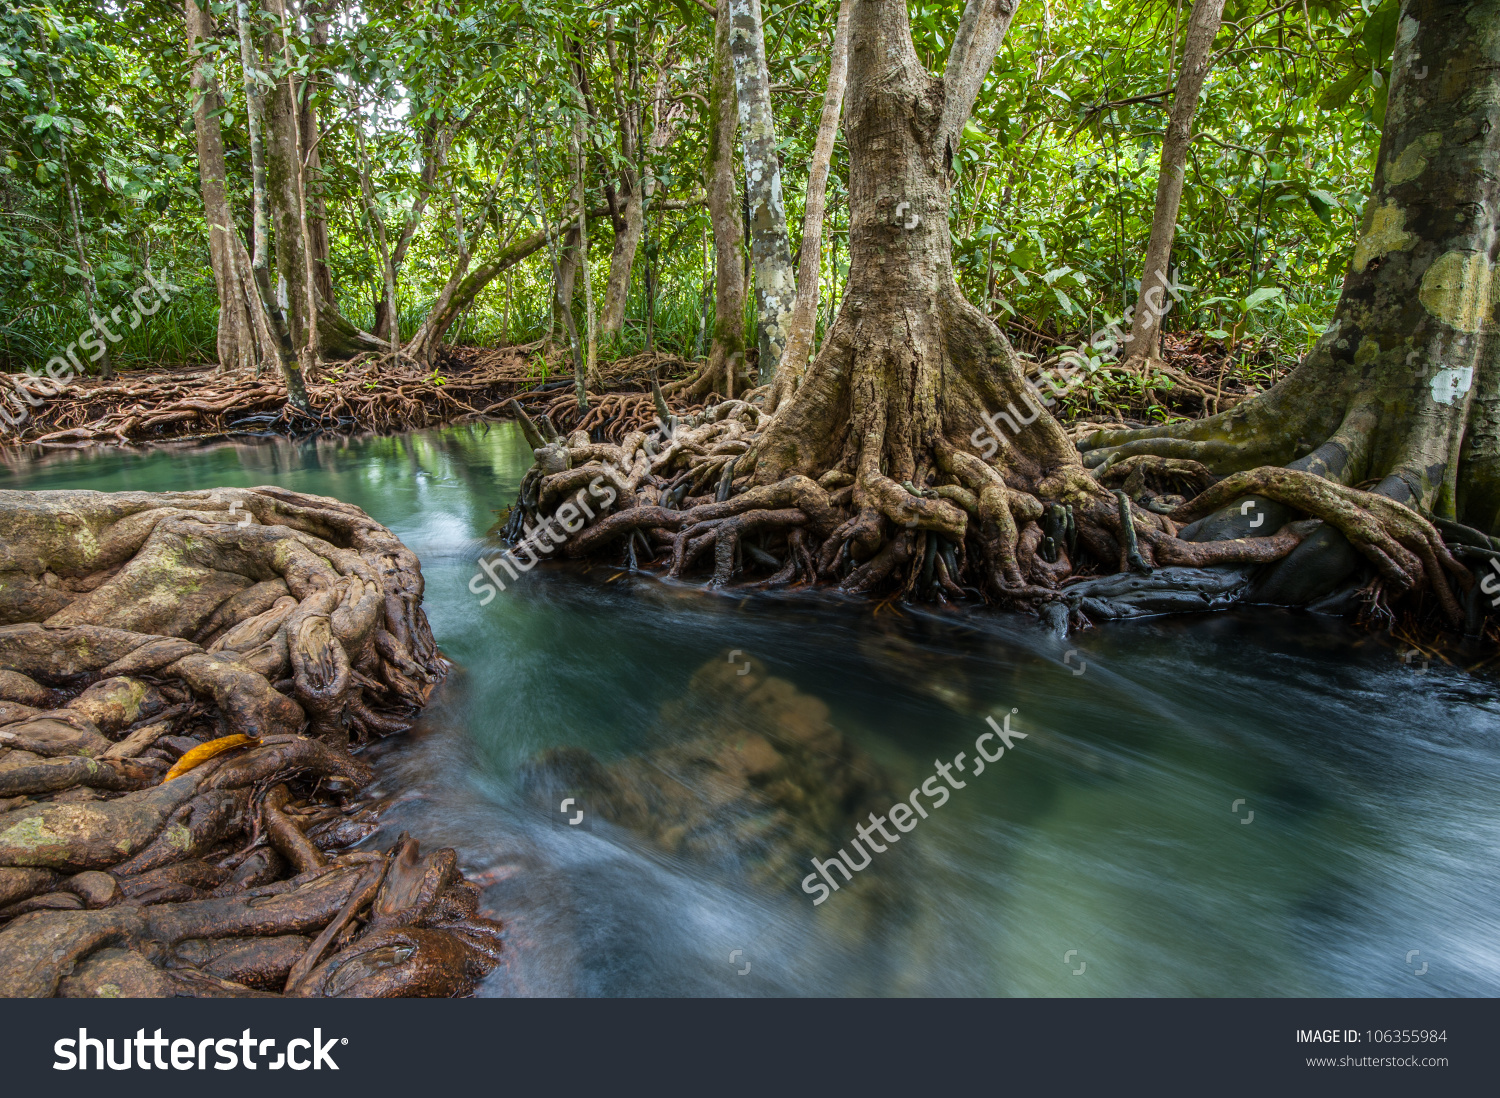 Mangrove Forests River Green Tree Stock Photo 106355984.